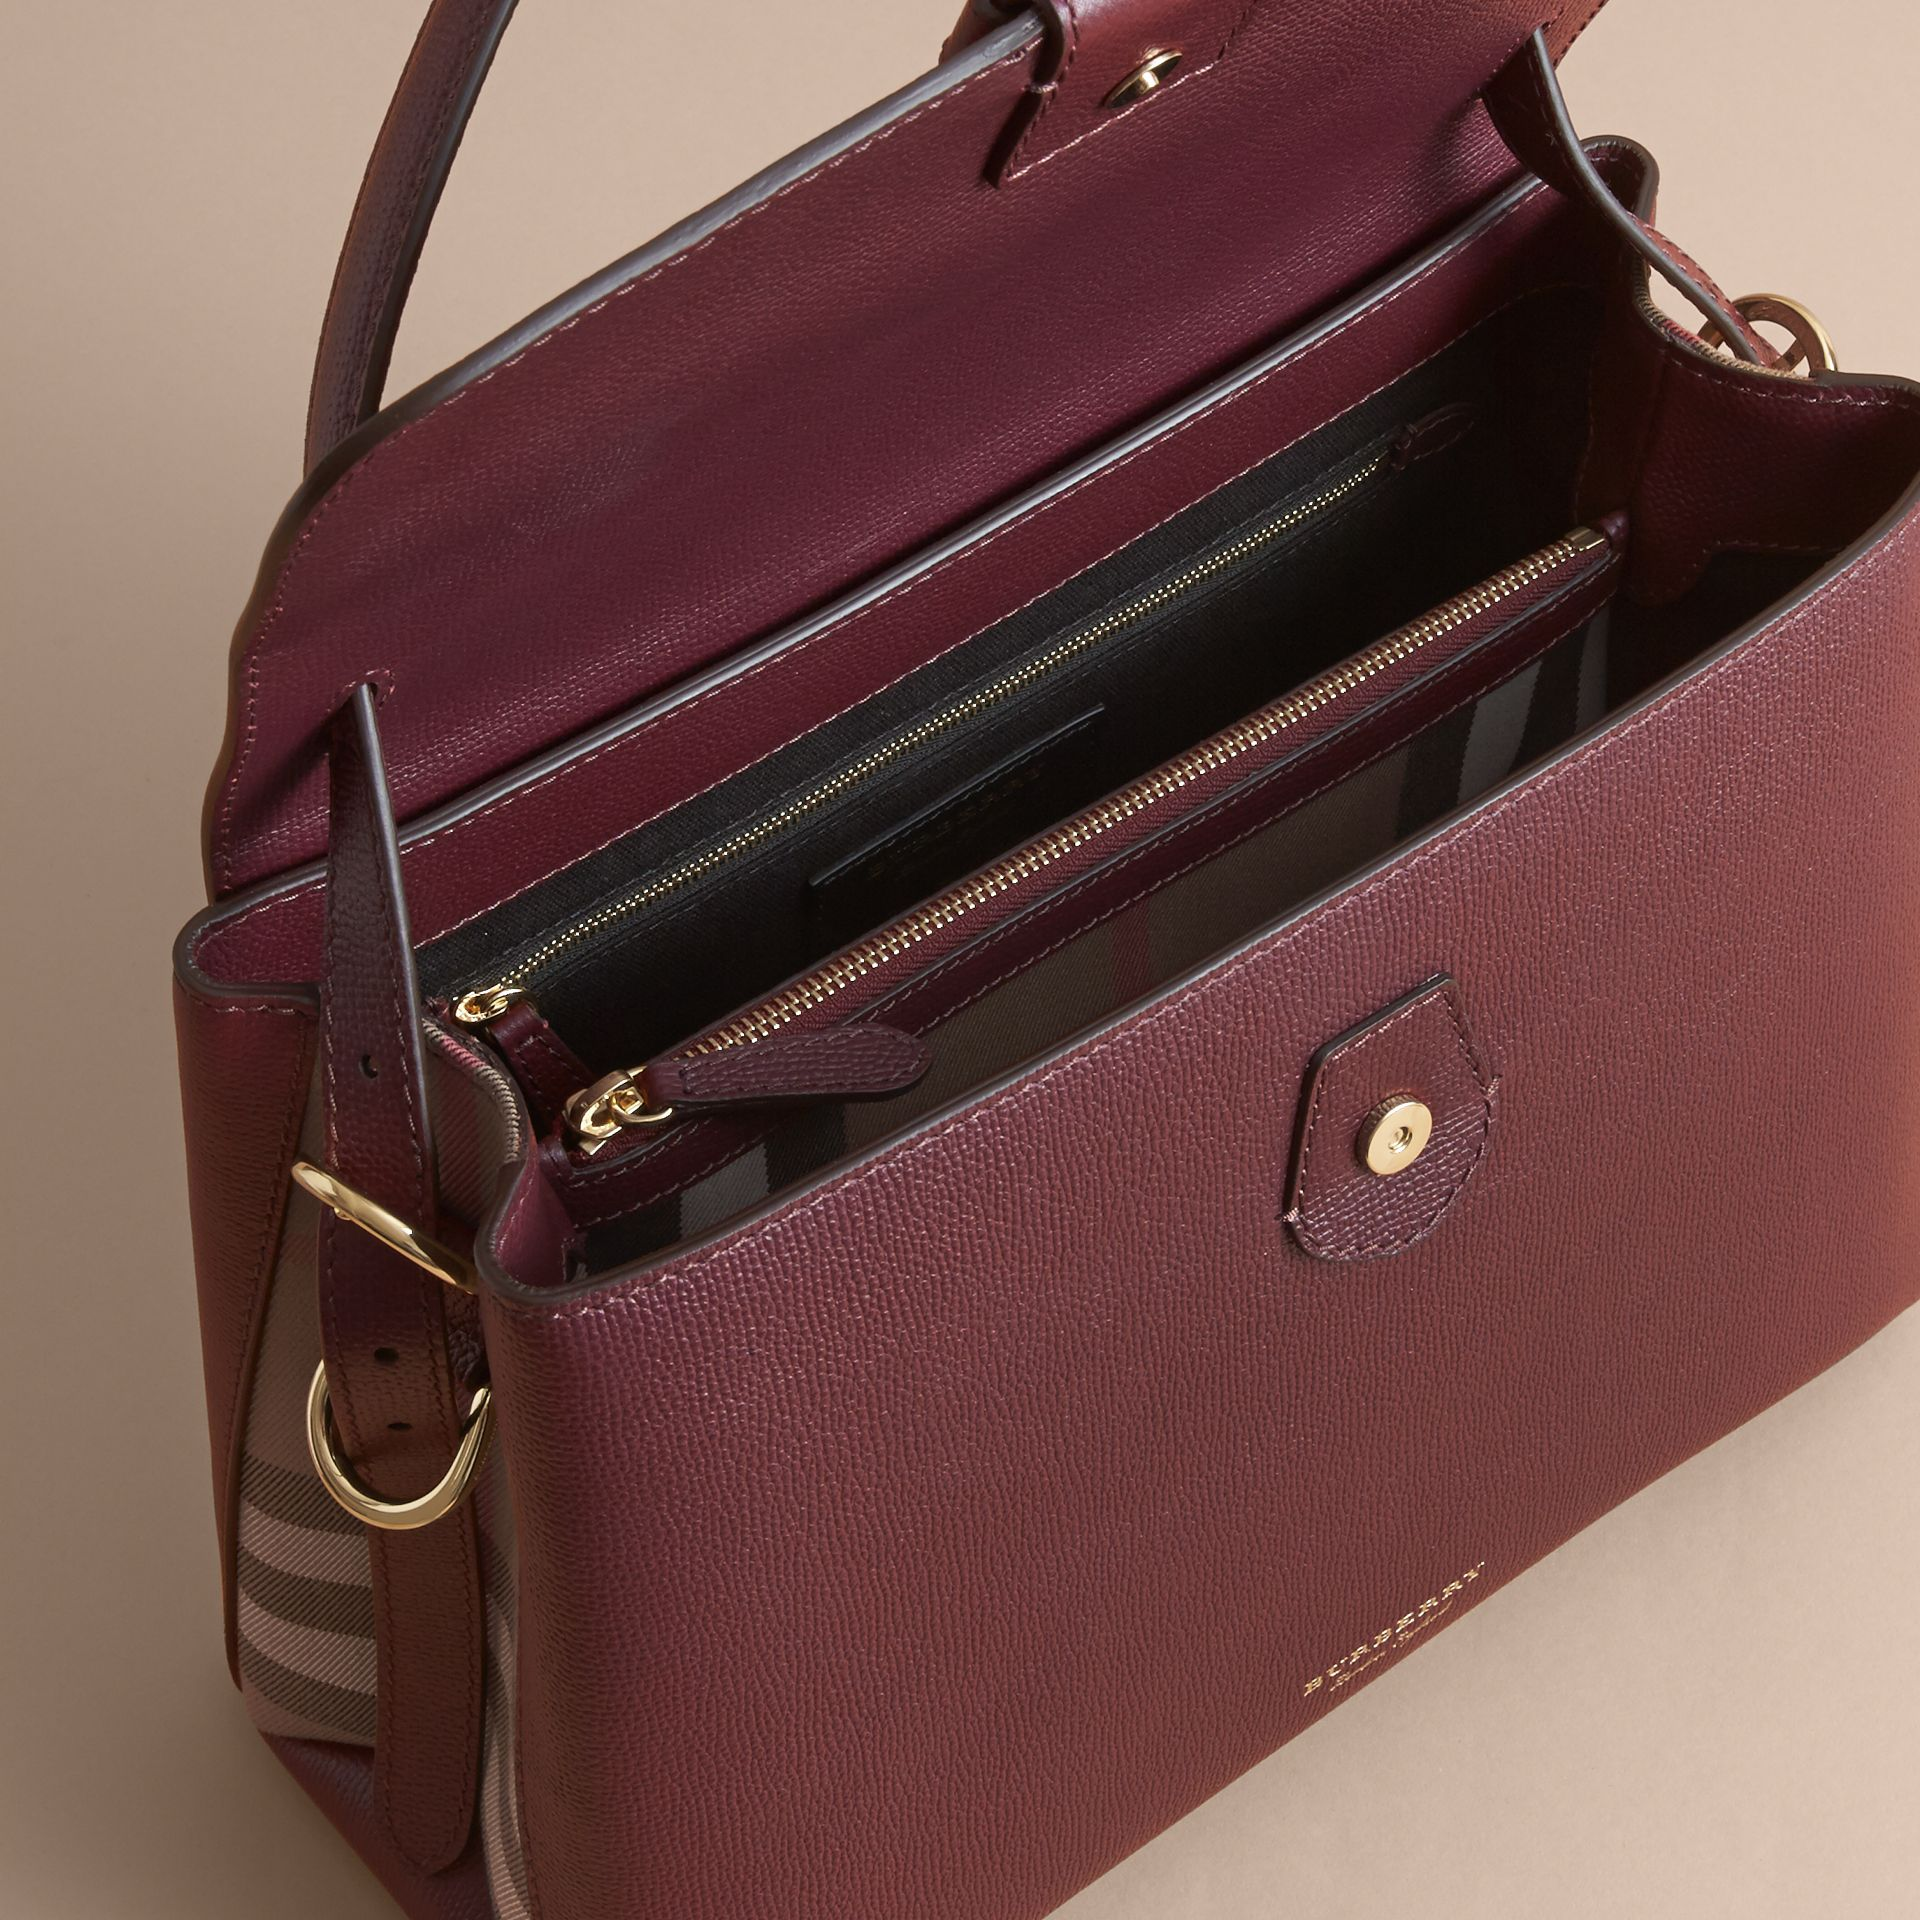 Medium Grainy Leather and House Check Tote Bag in Mahogany Red - Women | Burberry United Kingdom - gallery image 6